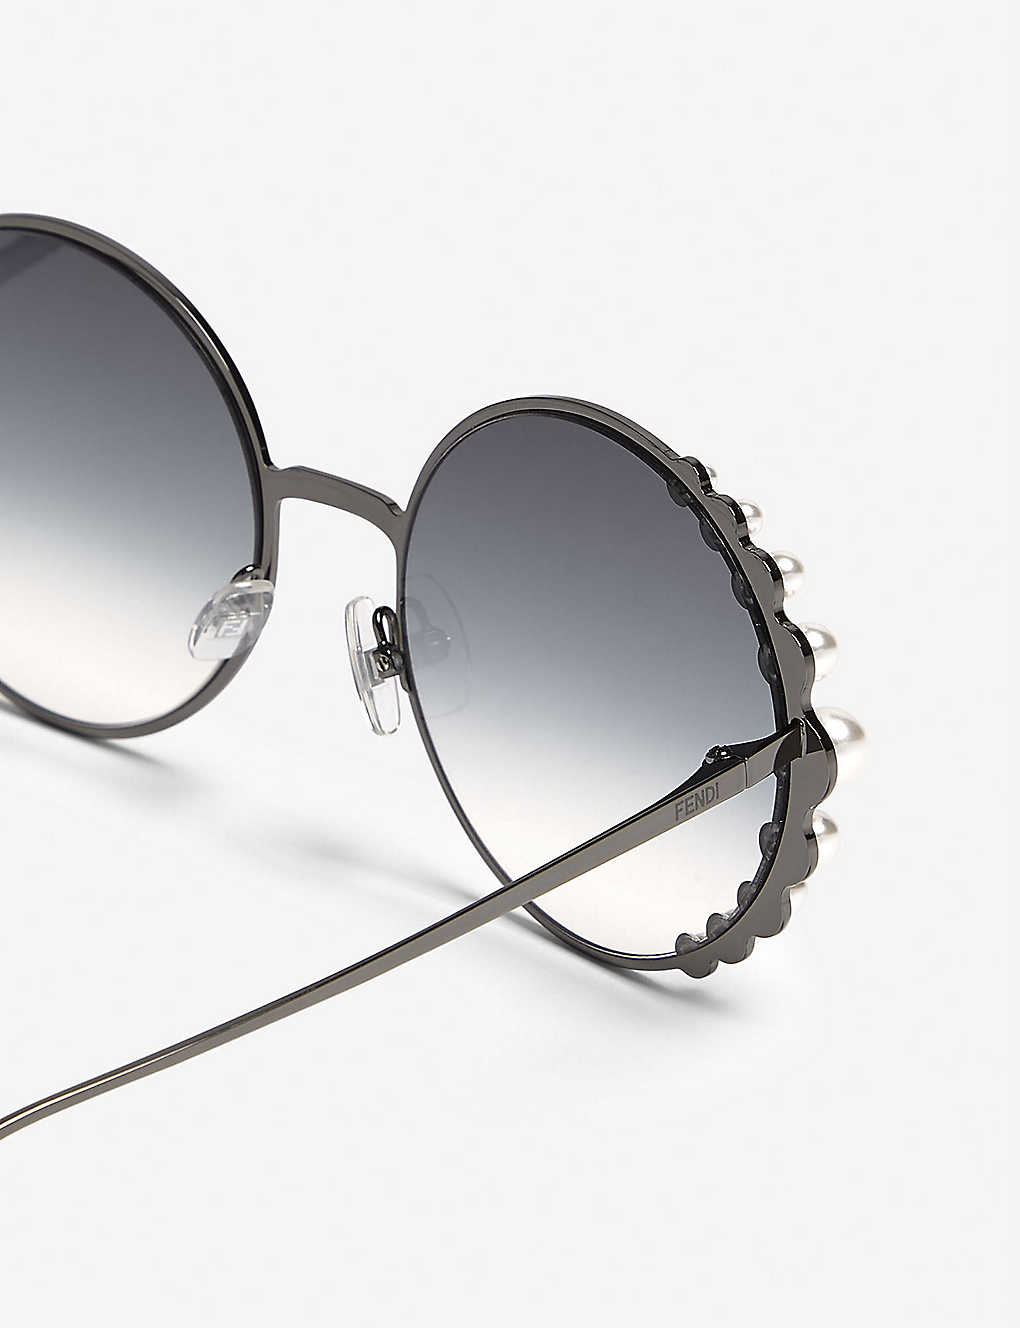 14847e68a7 ... Ribbons and Pearls oversized round-frame sunglasses - Silver zoom